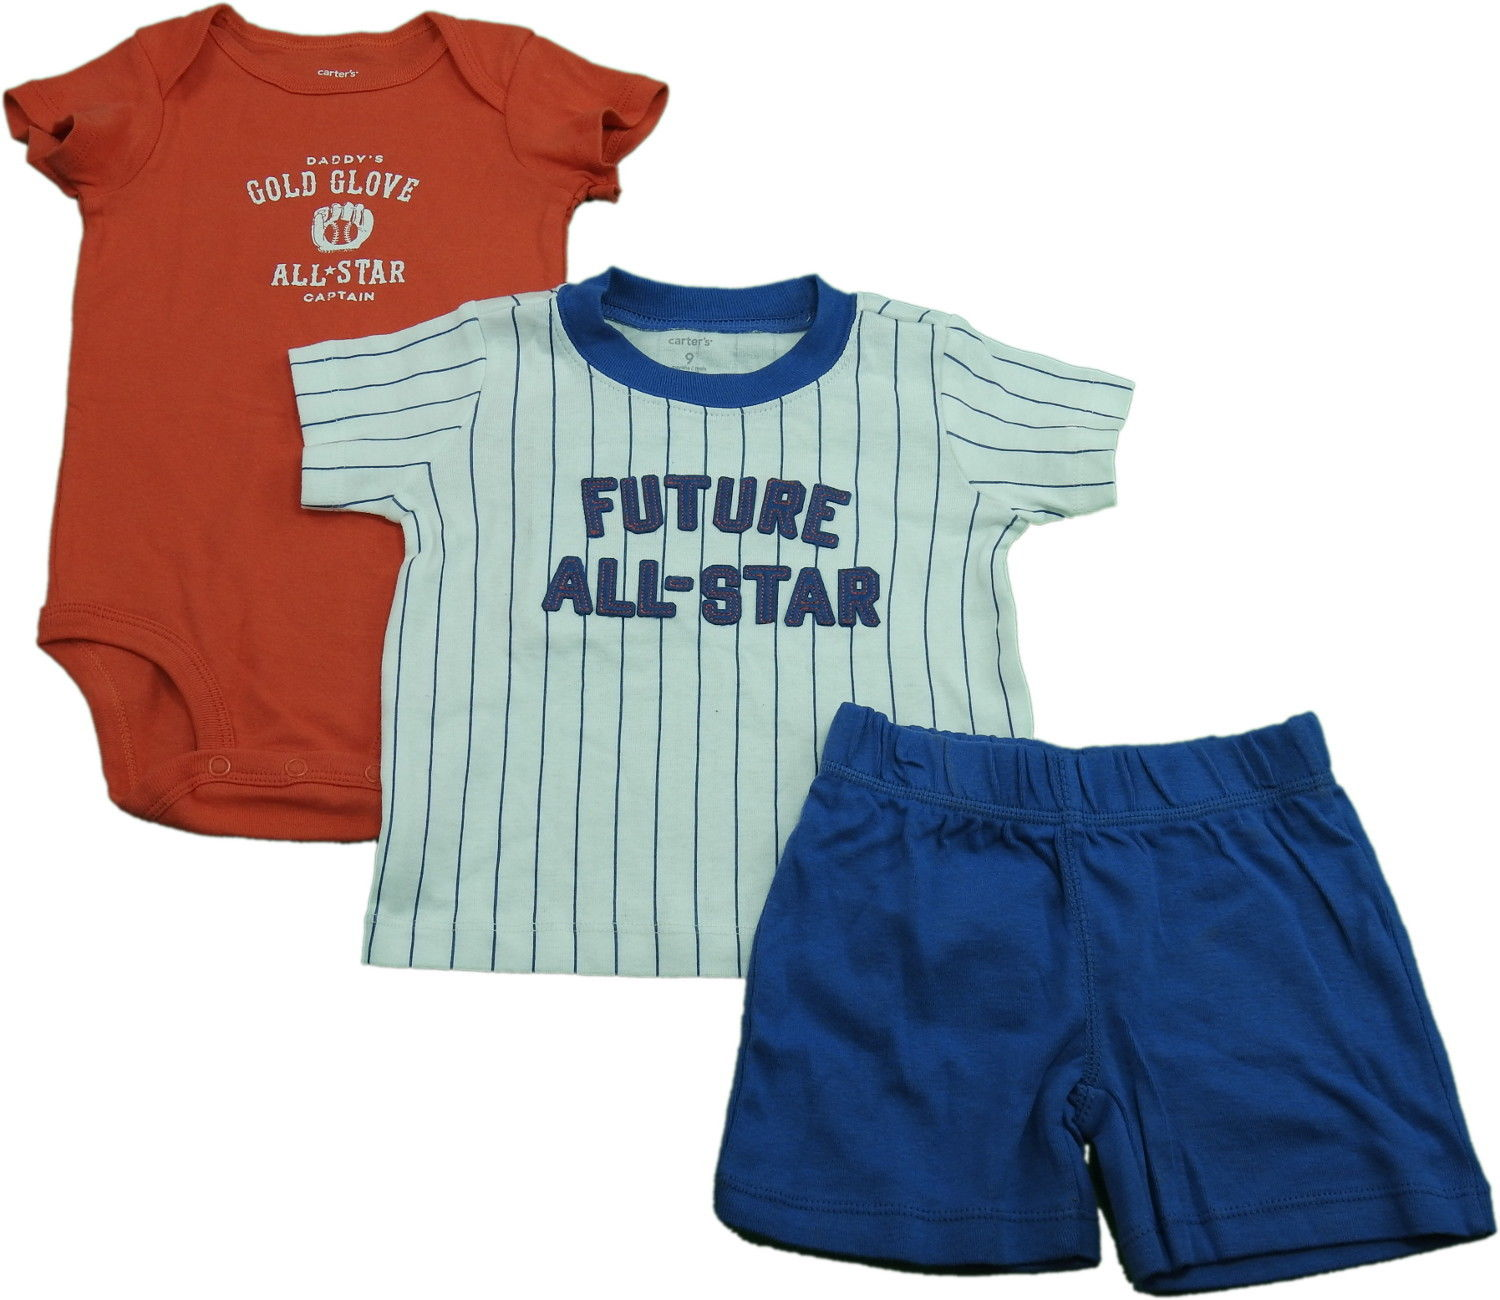 88d2bf6b9 Details about Carters Baby Boys